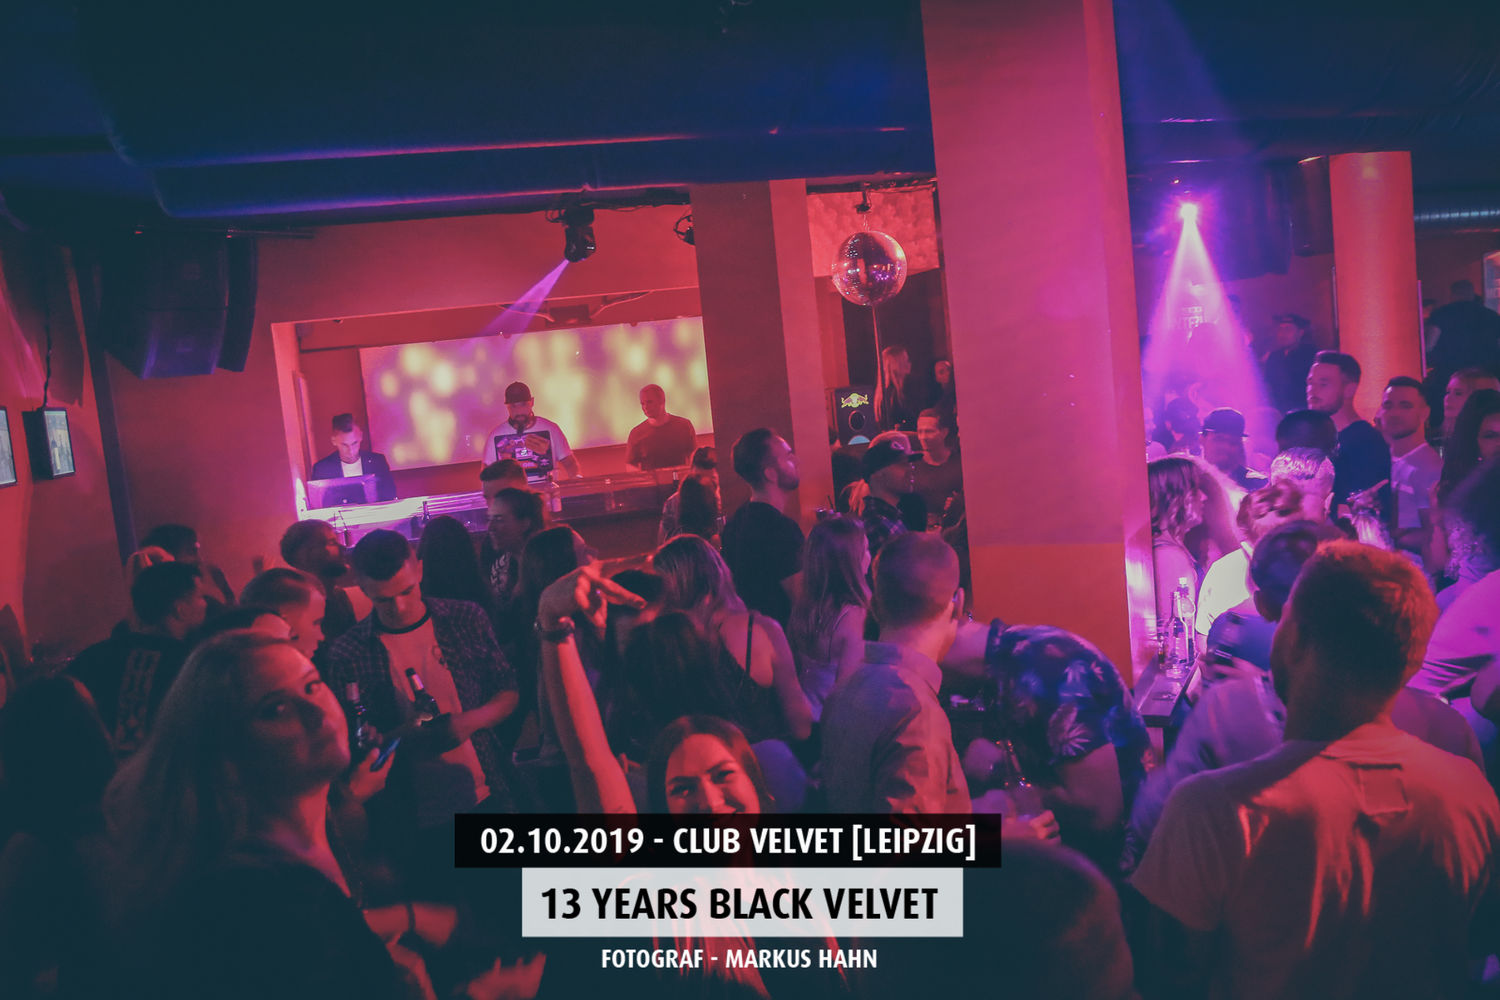 13-years-black-velvet-club-velvet-7-1